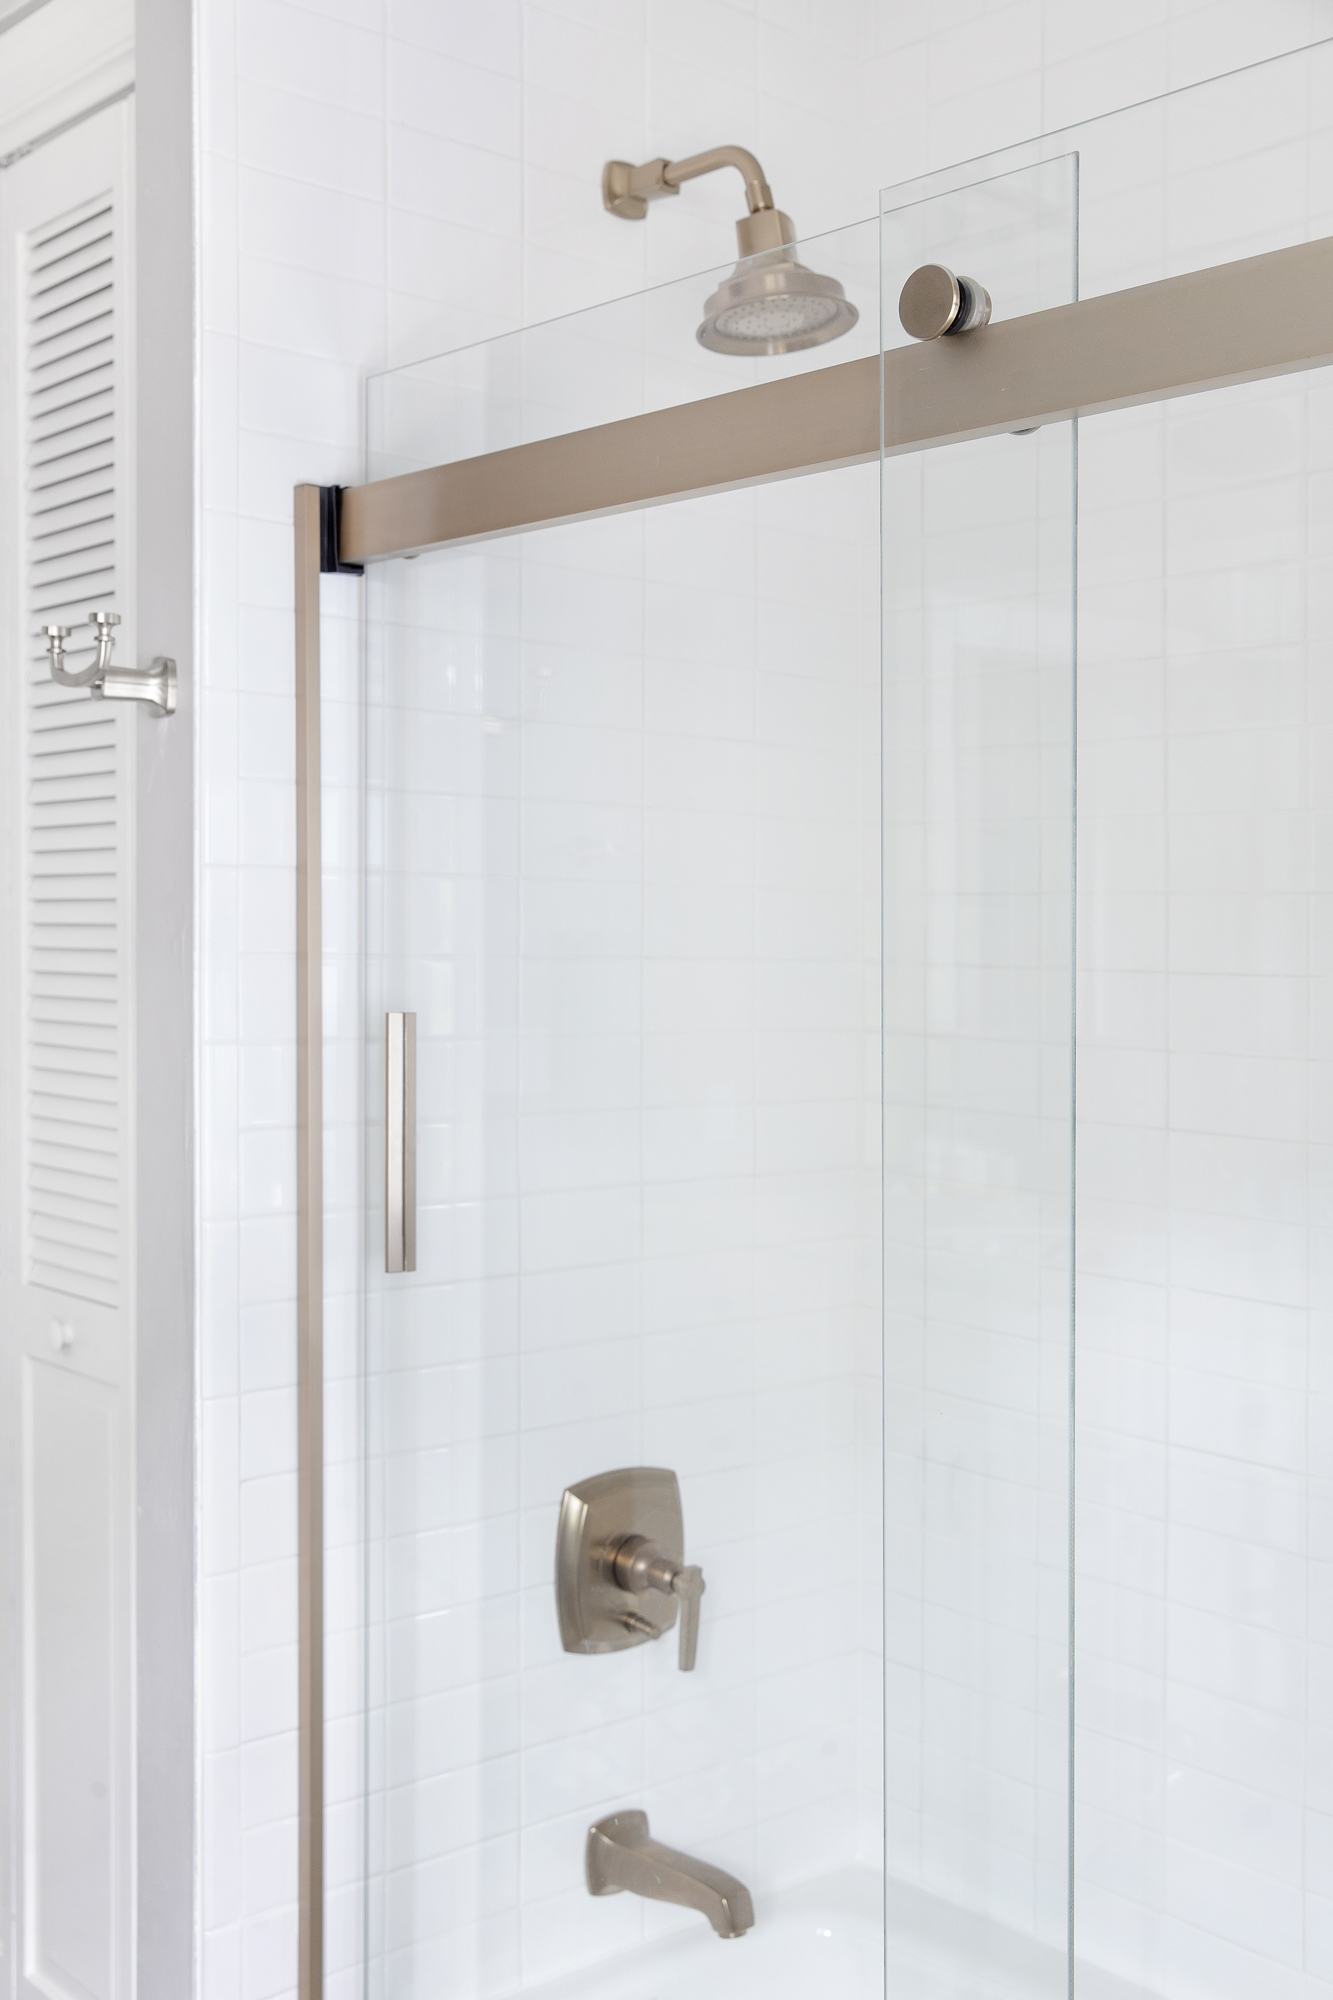 Margaux® bath/shower trim set     Levity® bath door     Villager™ alcove bath     A single brushed bronze finish on all the faucets as well as the shower doors brings a cohesive look to the bathroom.